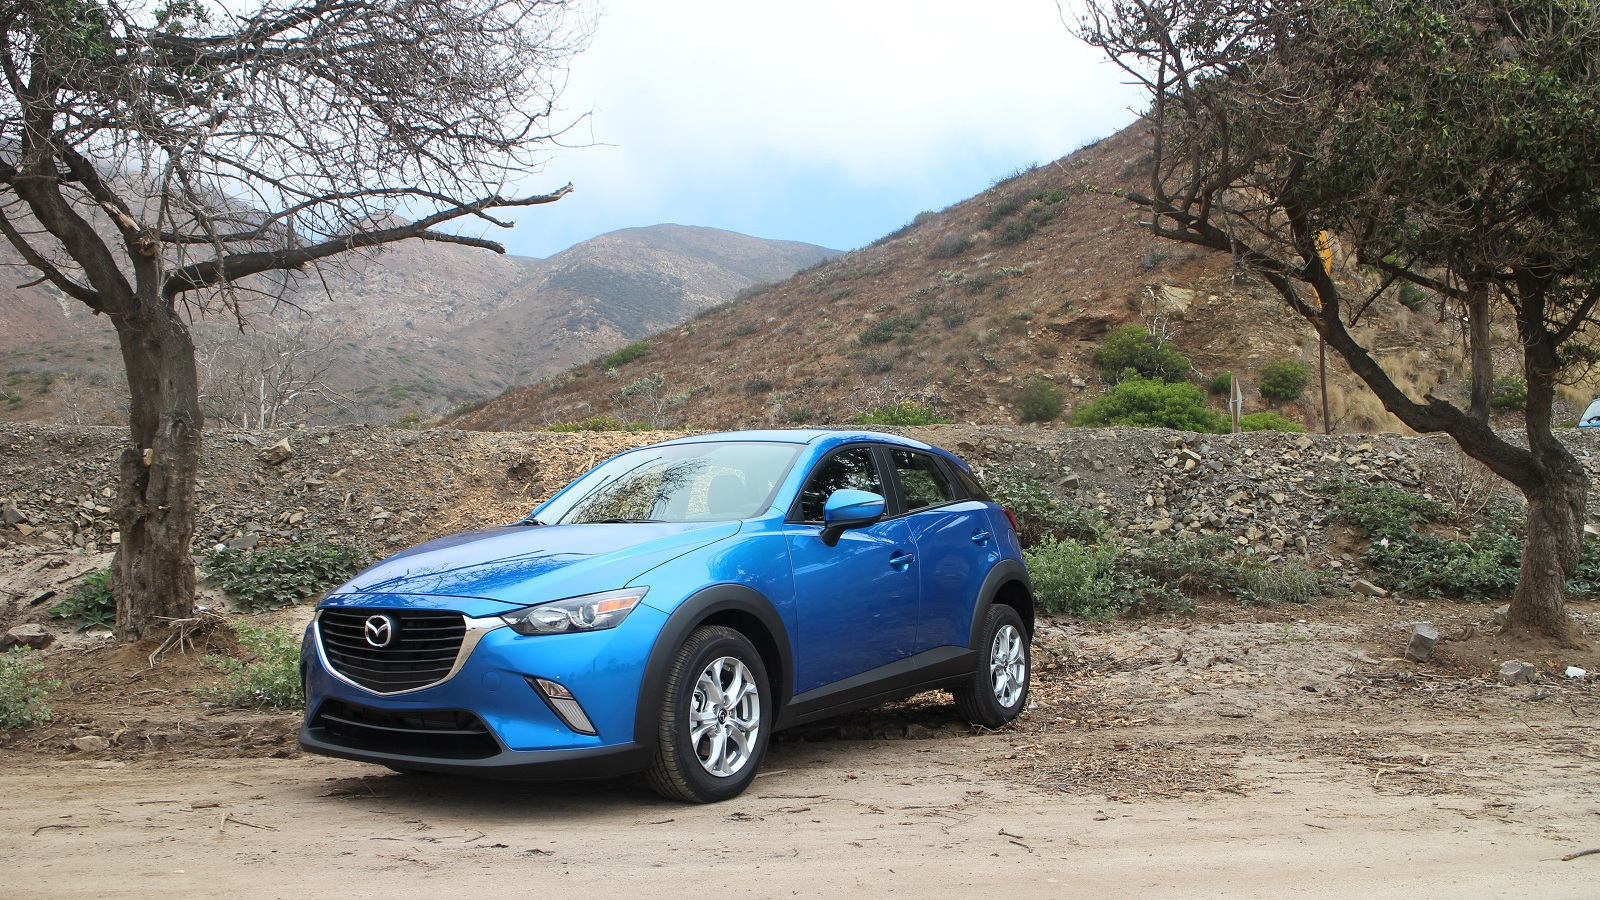 2016 Mazda Cx 3 First Drive Of 31 Mpg Small Sporty Crossover